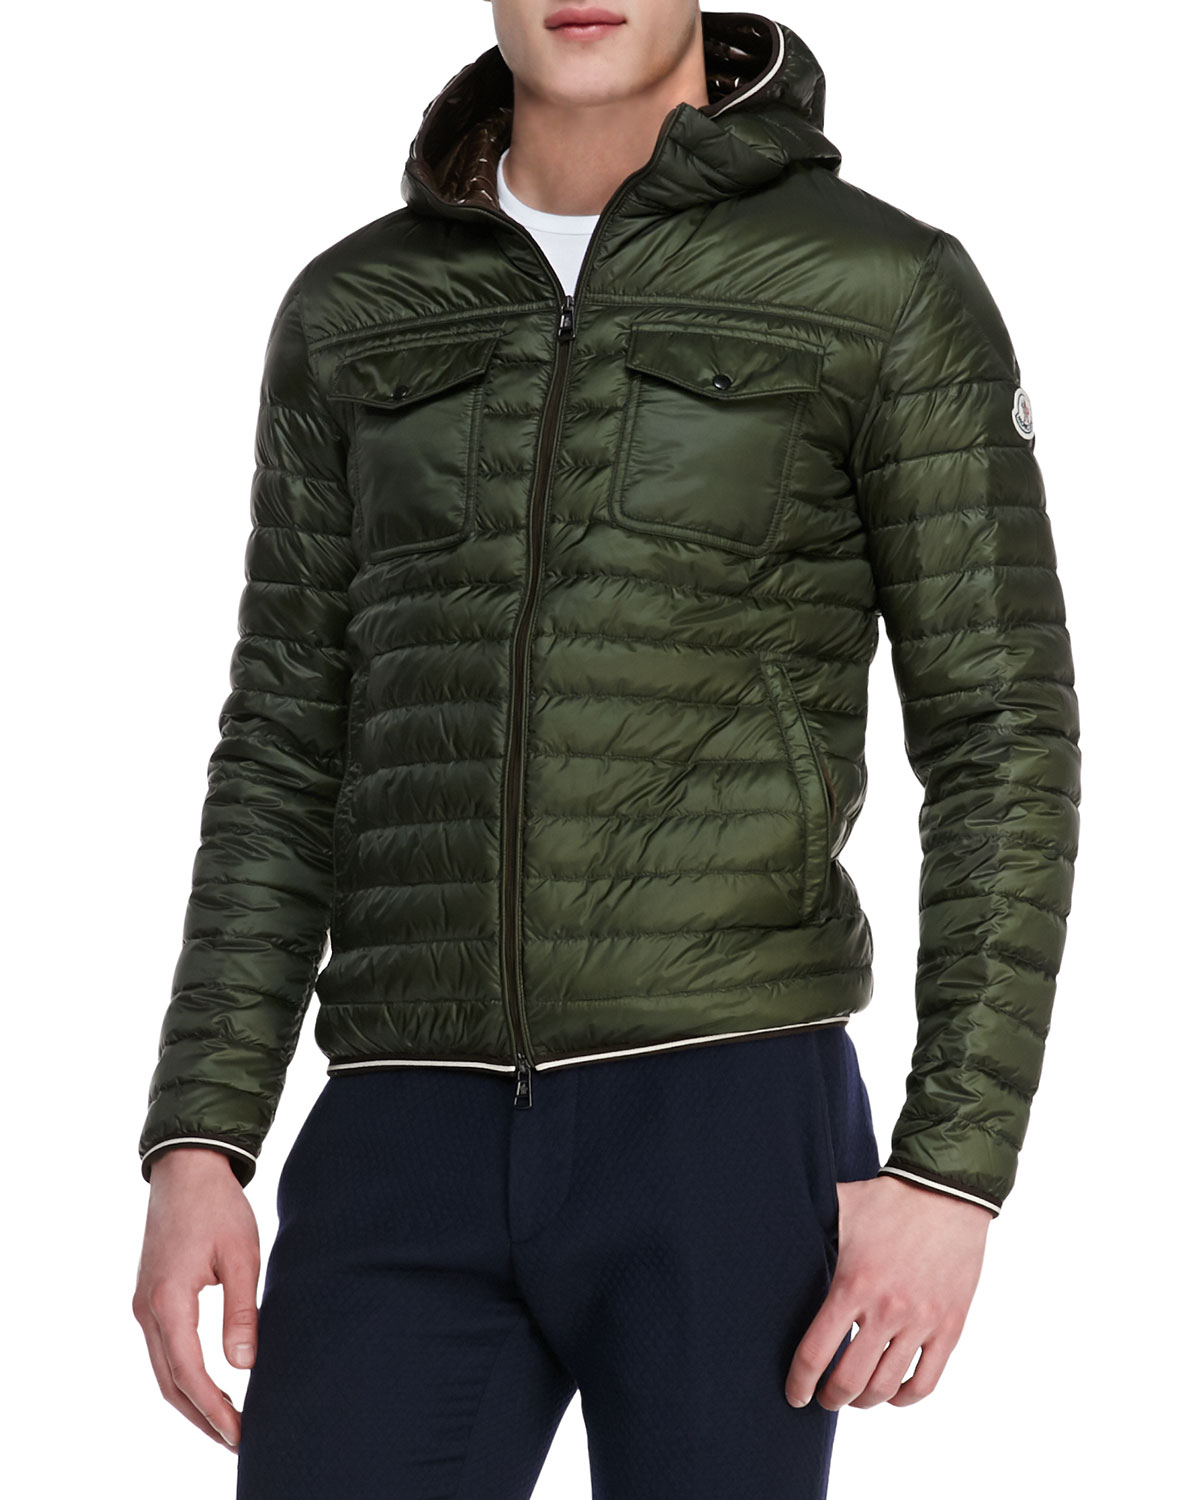 russia-youtube.tk provides puffer jacket items from China top selected Men's Down & Parkas, Men's Outerwear & Coats, Men's Clothing, Apparel suppliers at wholesale prices with worldwide delivery. You can find jacket, Men puffer jacket free shipping, puffer jacket men and view 33 puffer jacket reviews to help you choose.